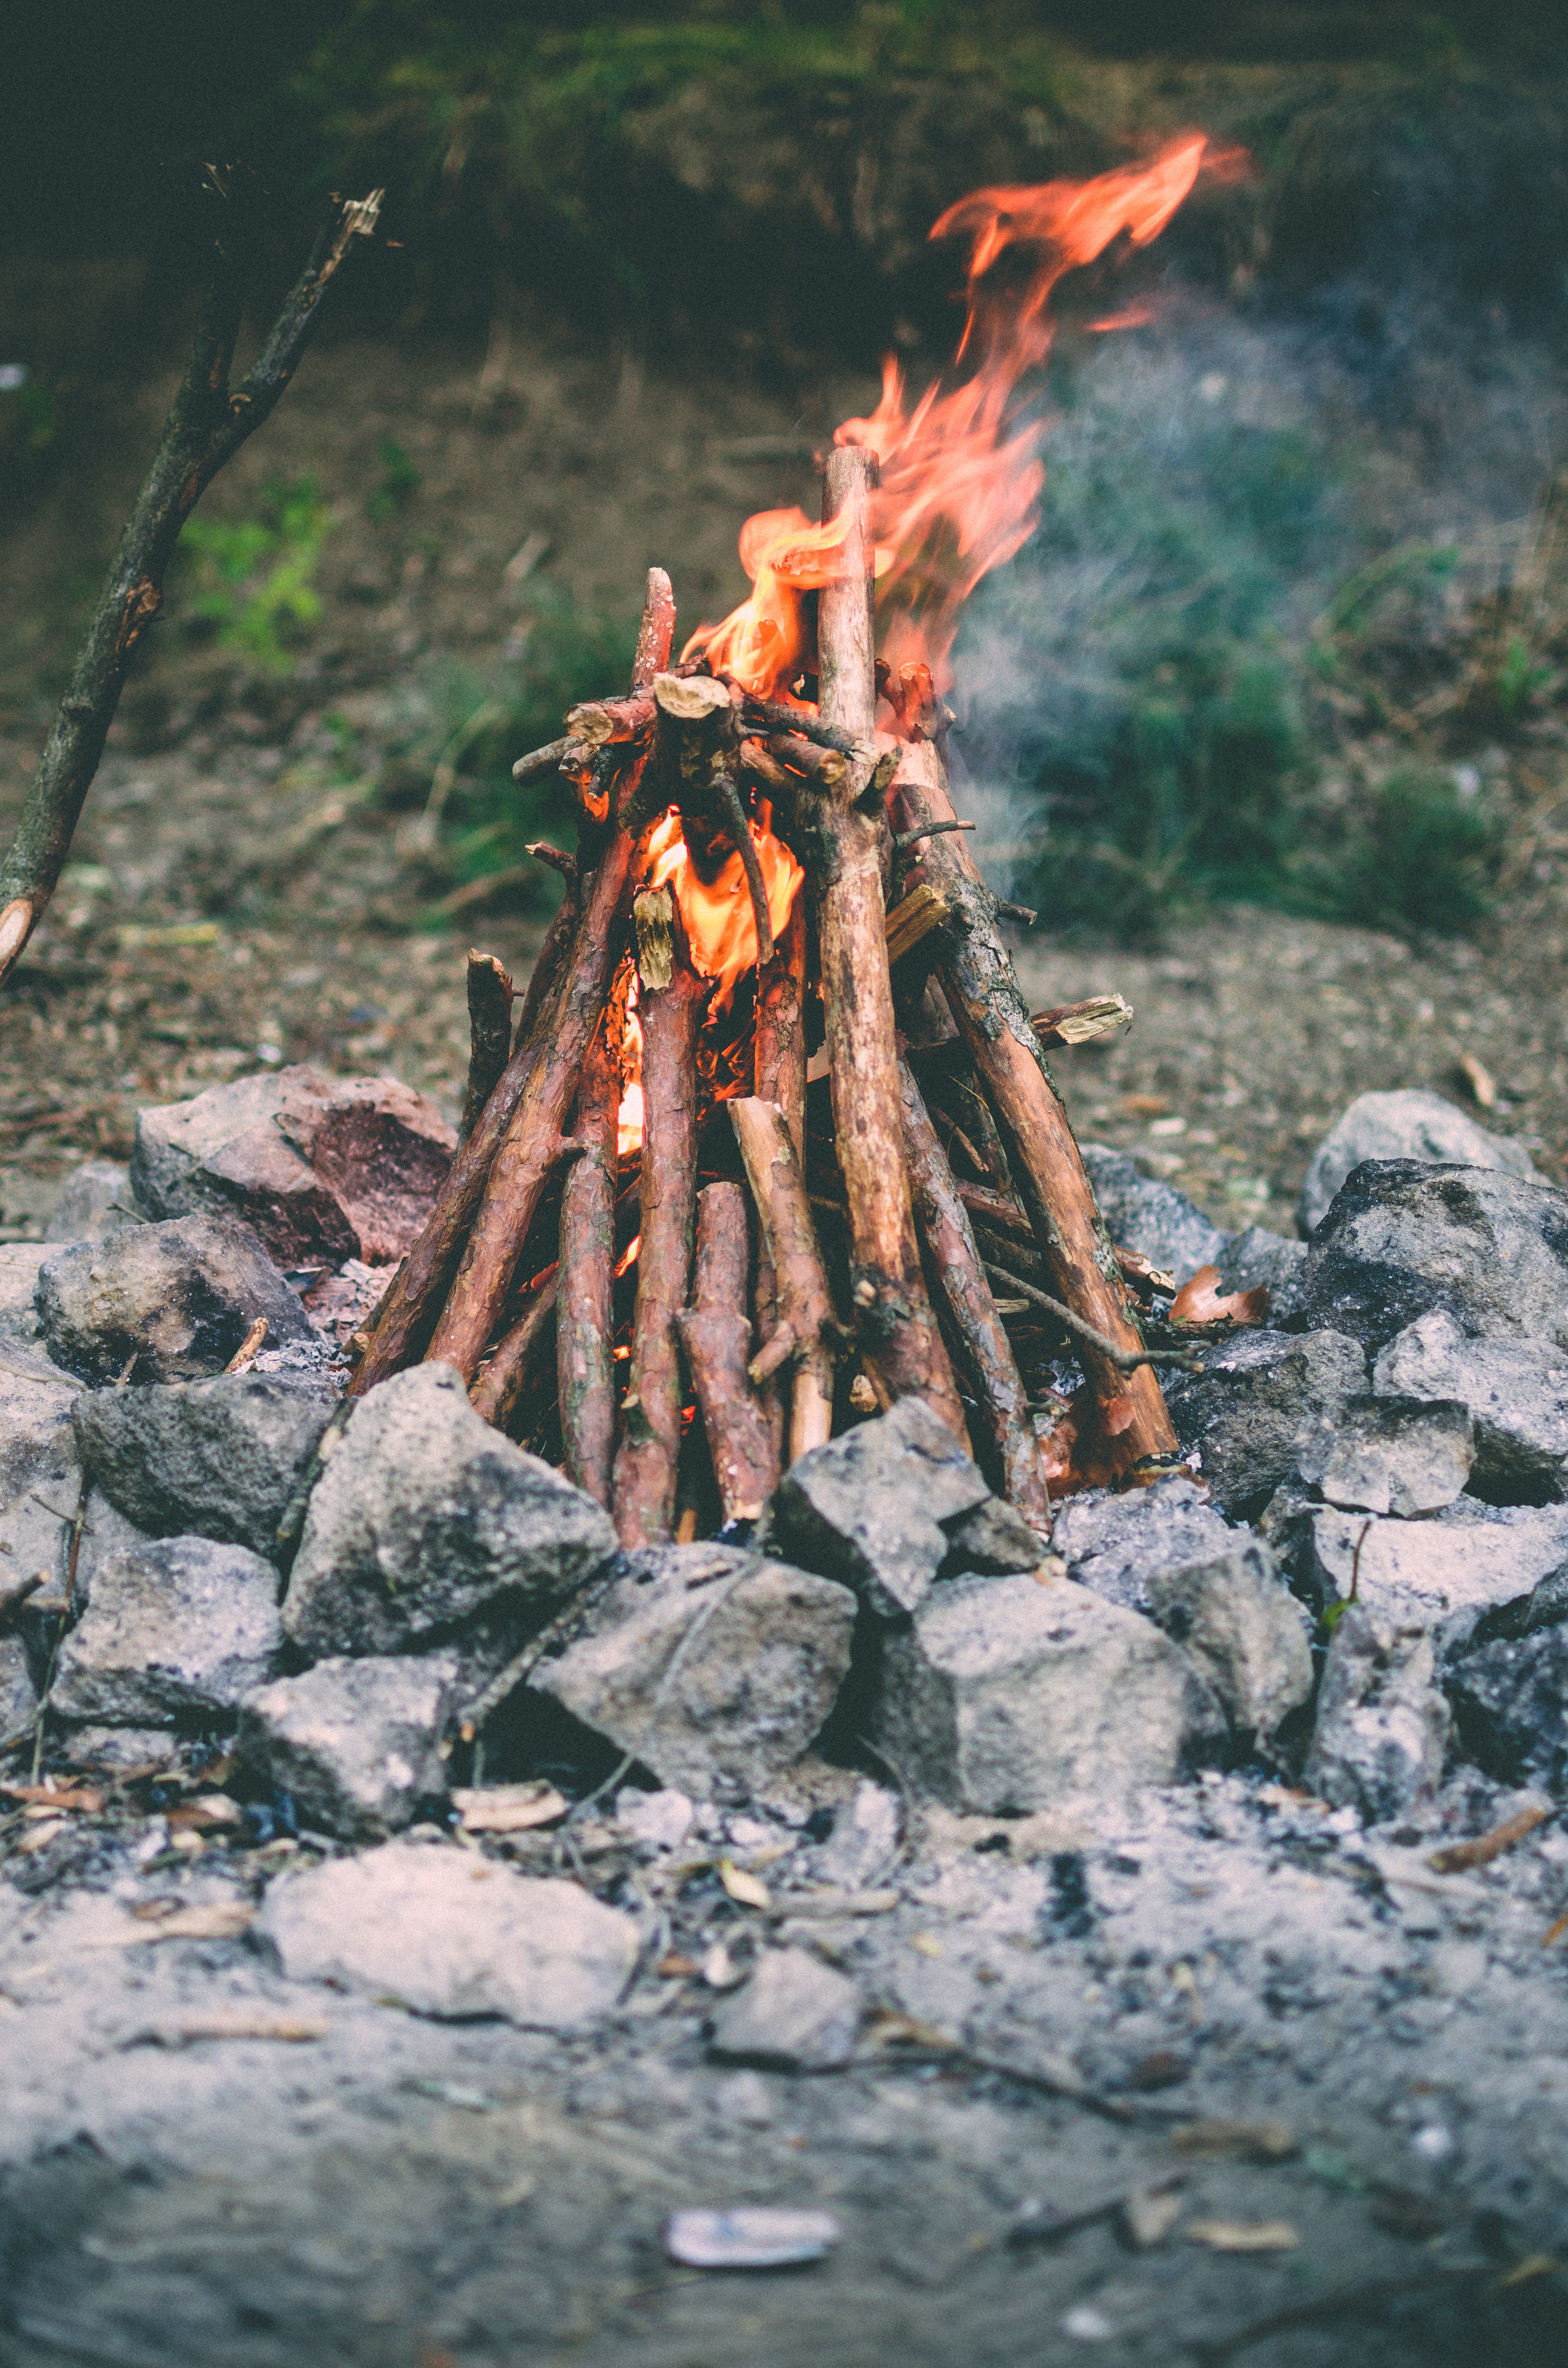 62680 Screensavers and Wallpapers Bonfire for phone. Download Nature, Stones, Fire, Bonfire, Camping, Campsite pictures for free